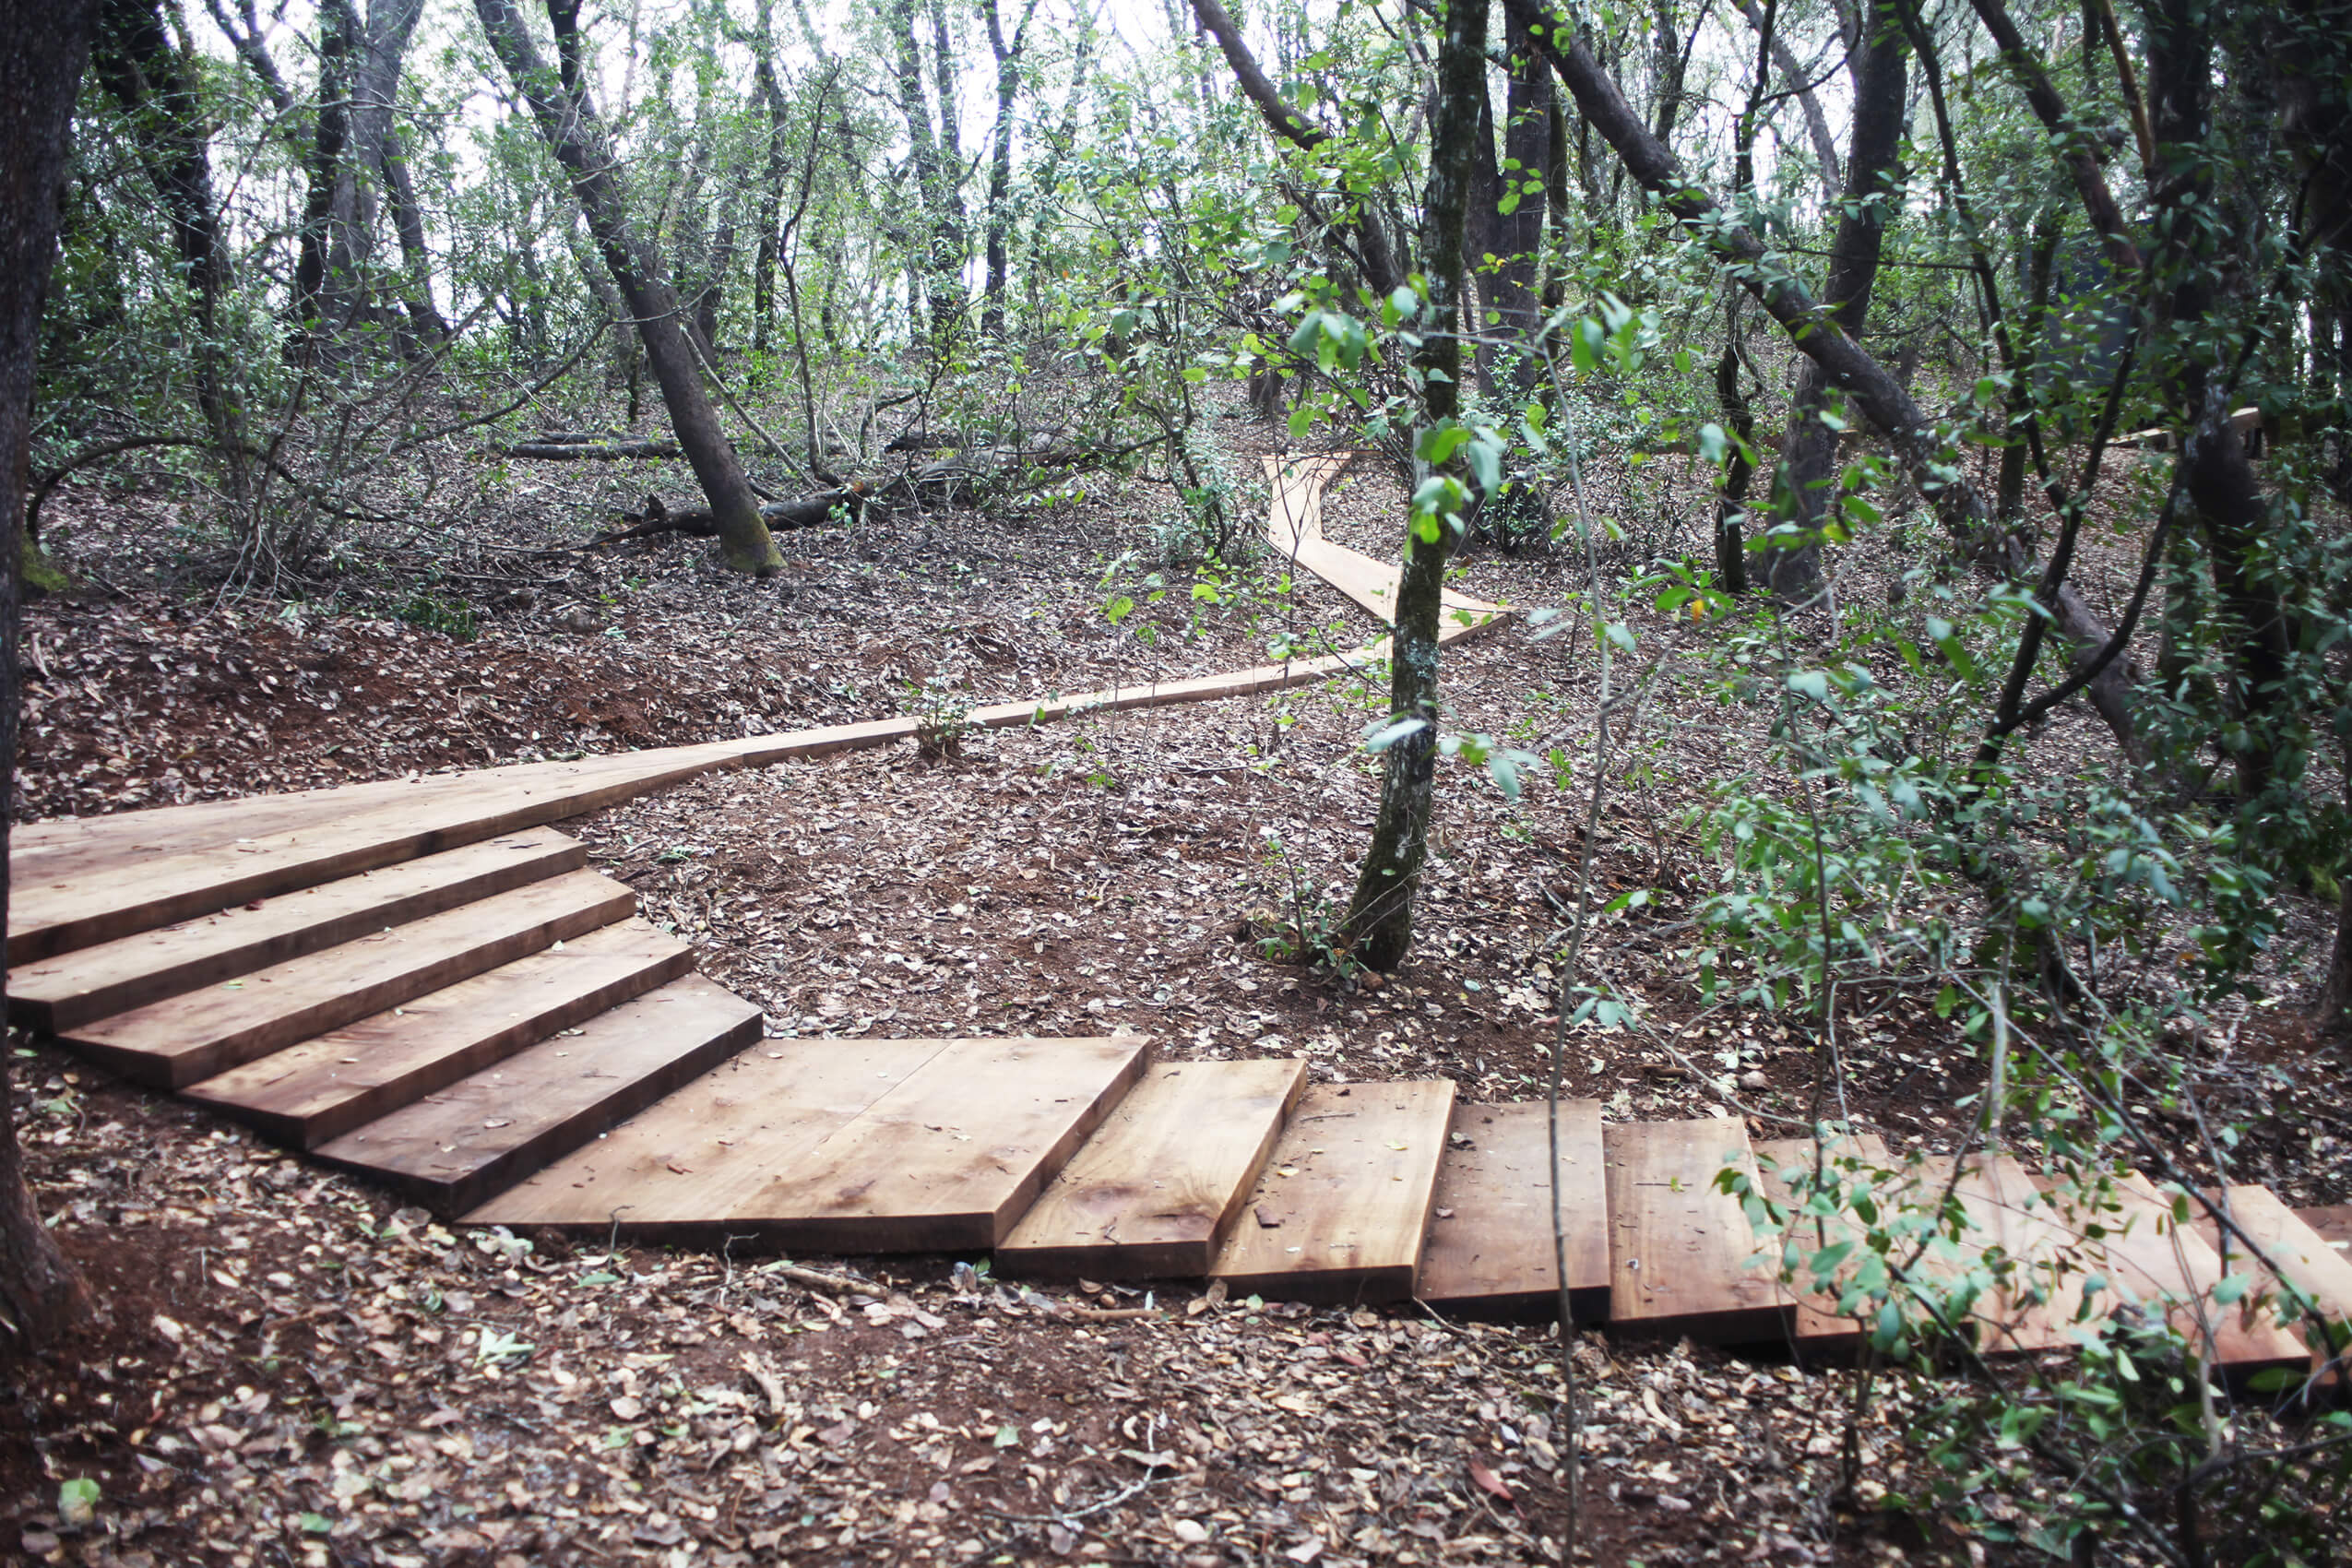 A wooden pathway through the woods